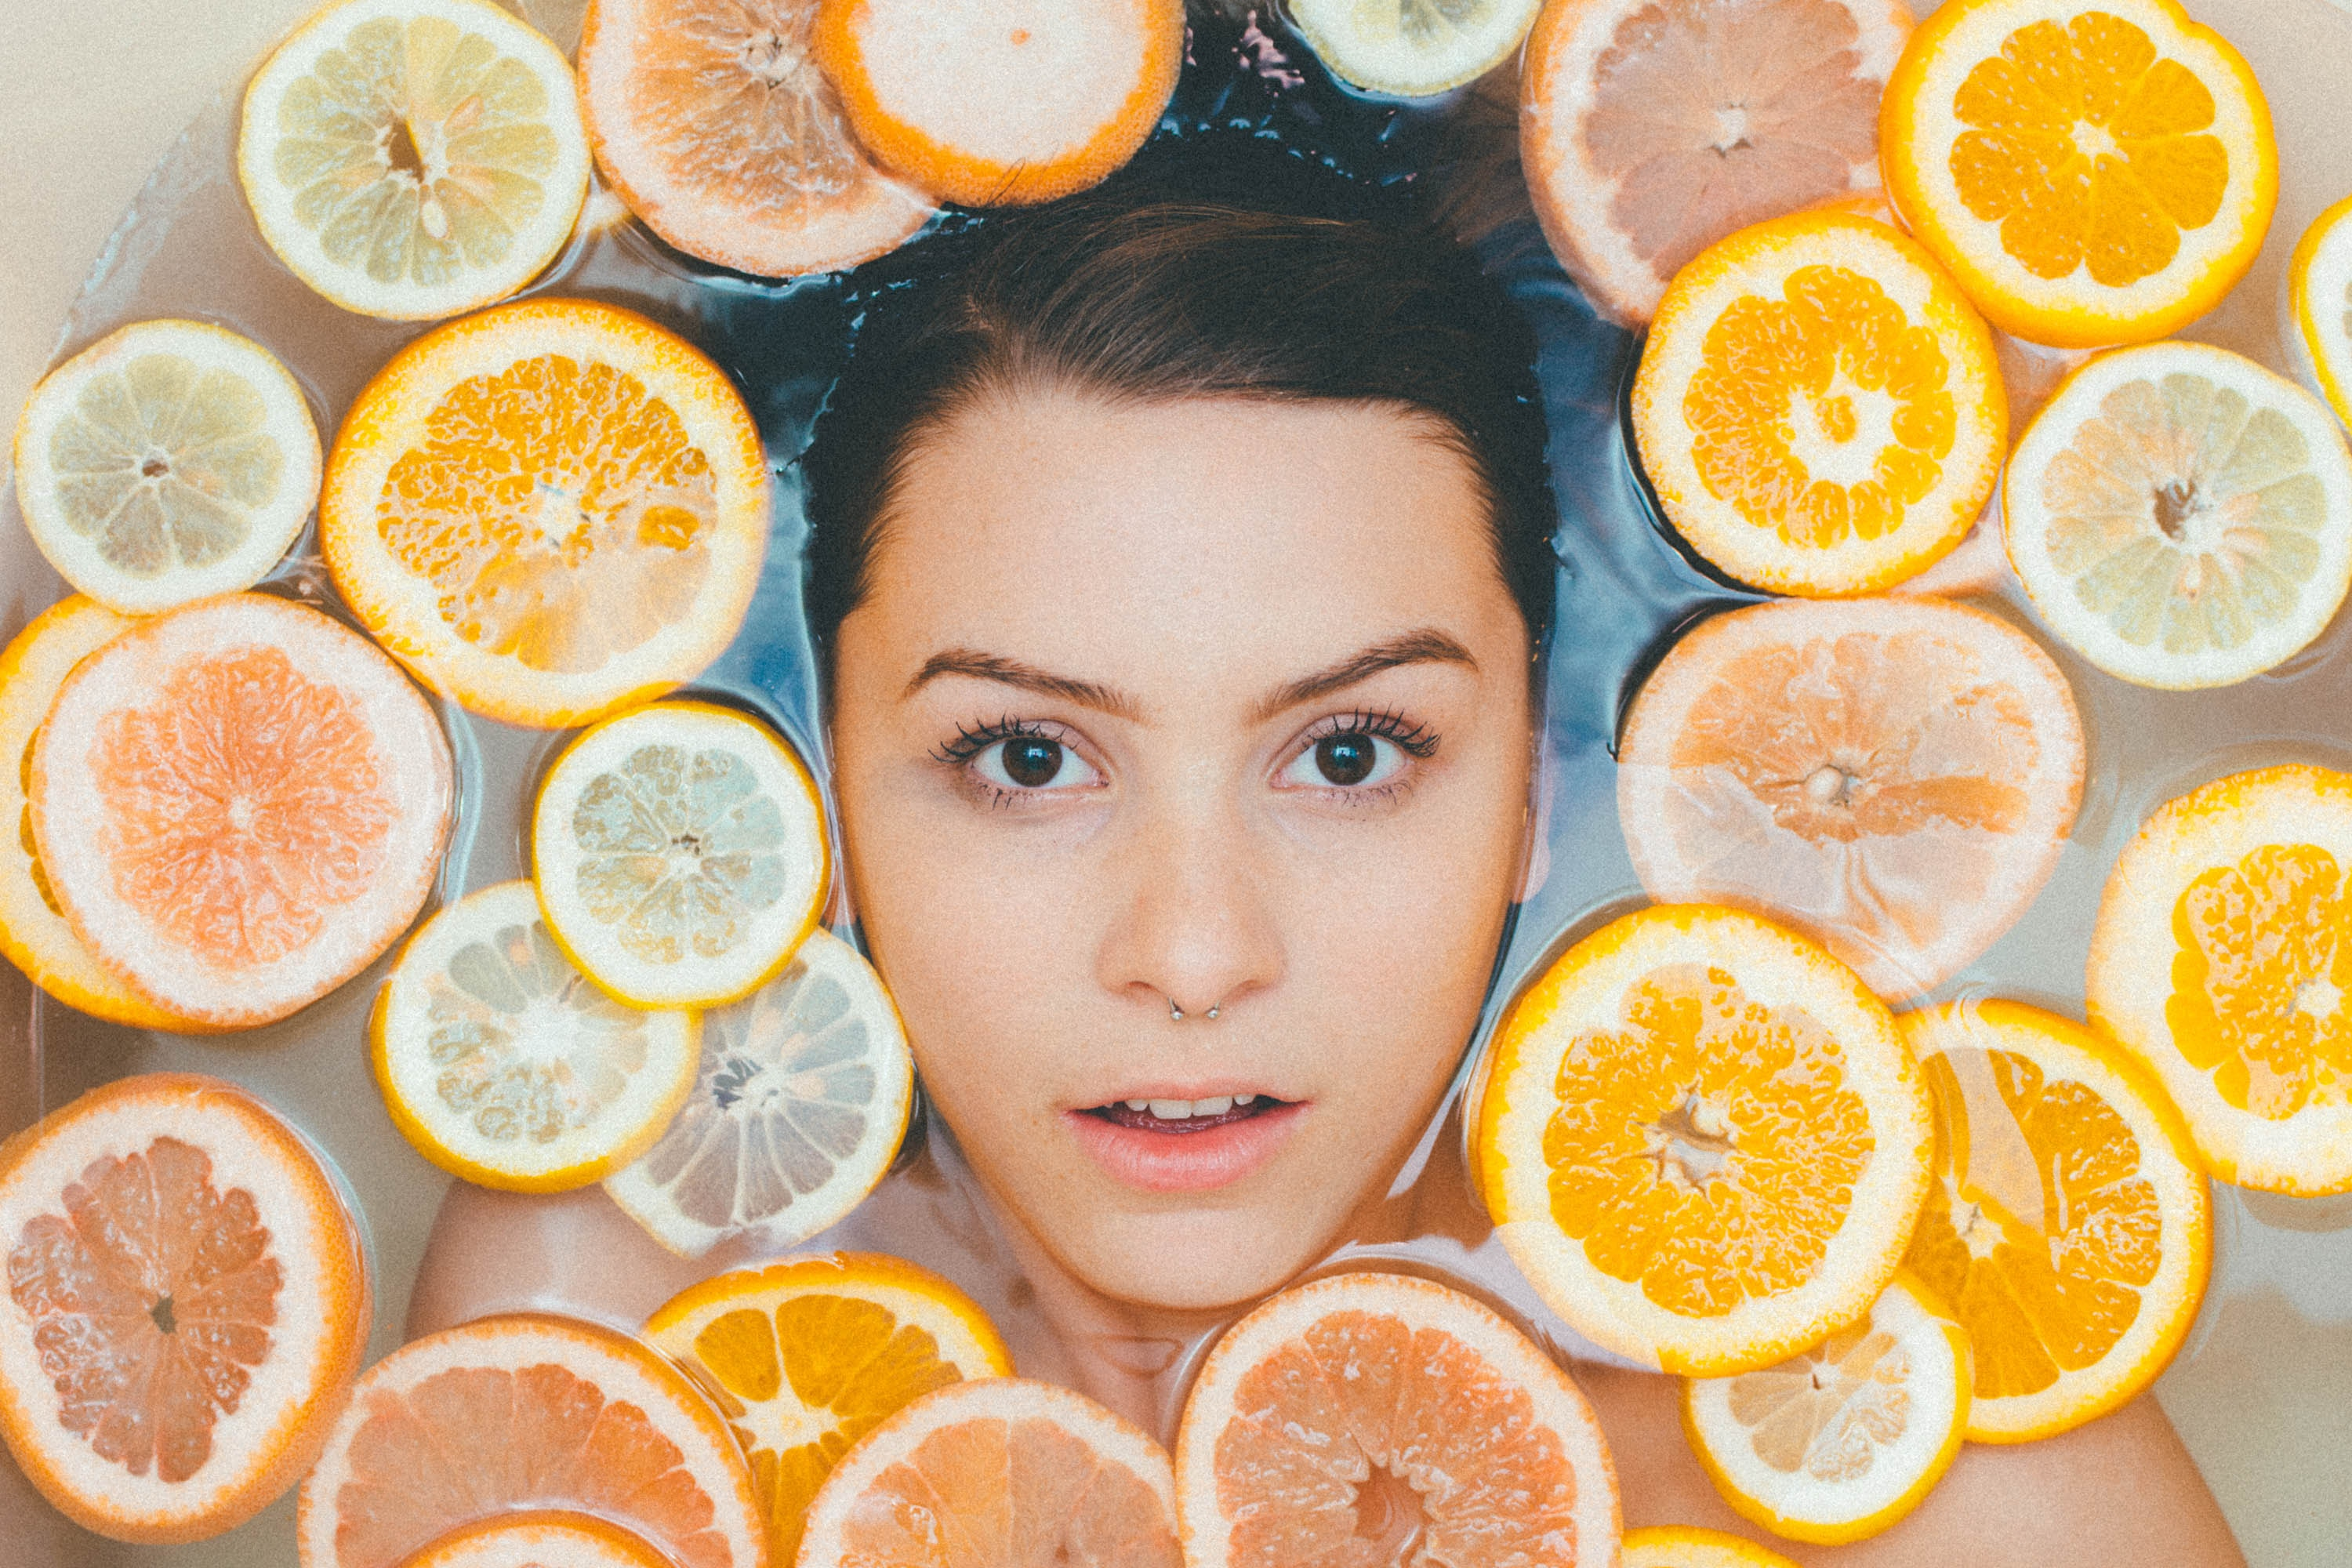 Cell-renewing grapefruit mask